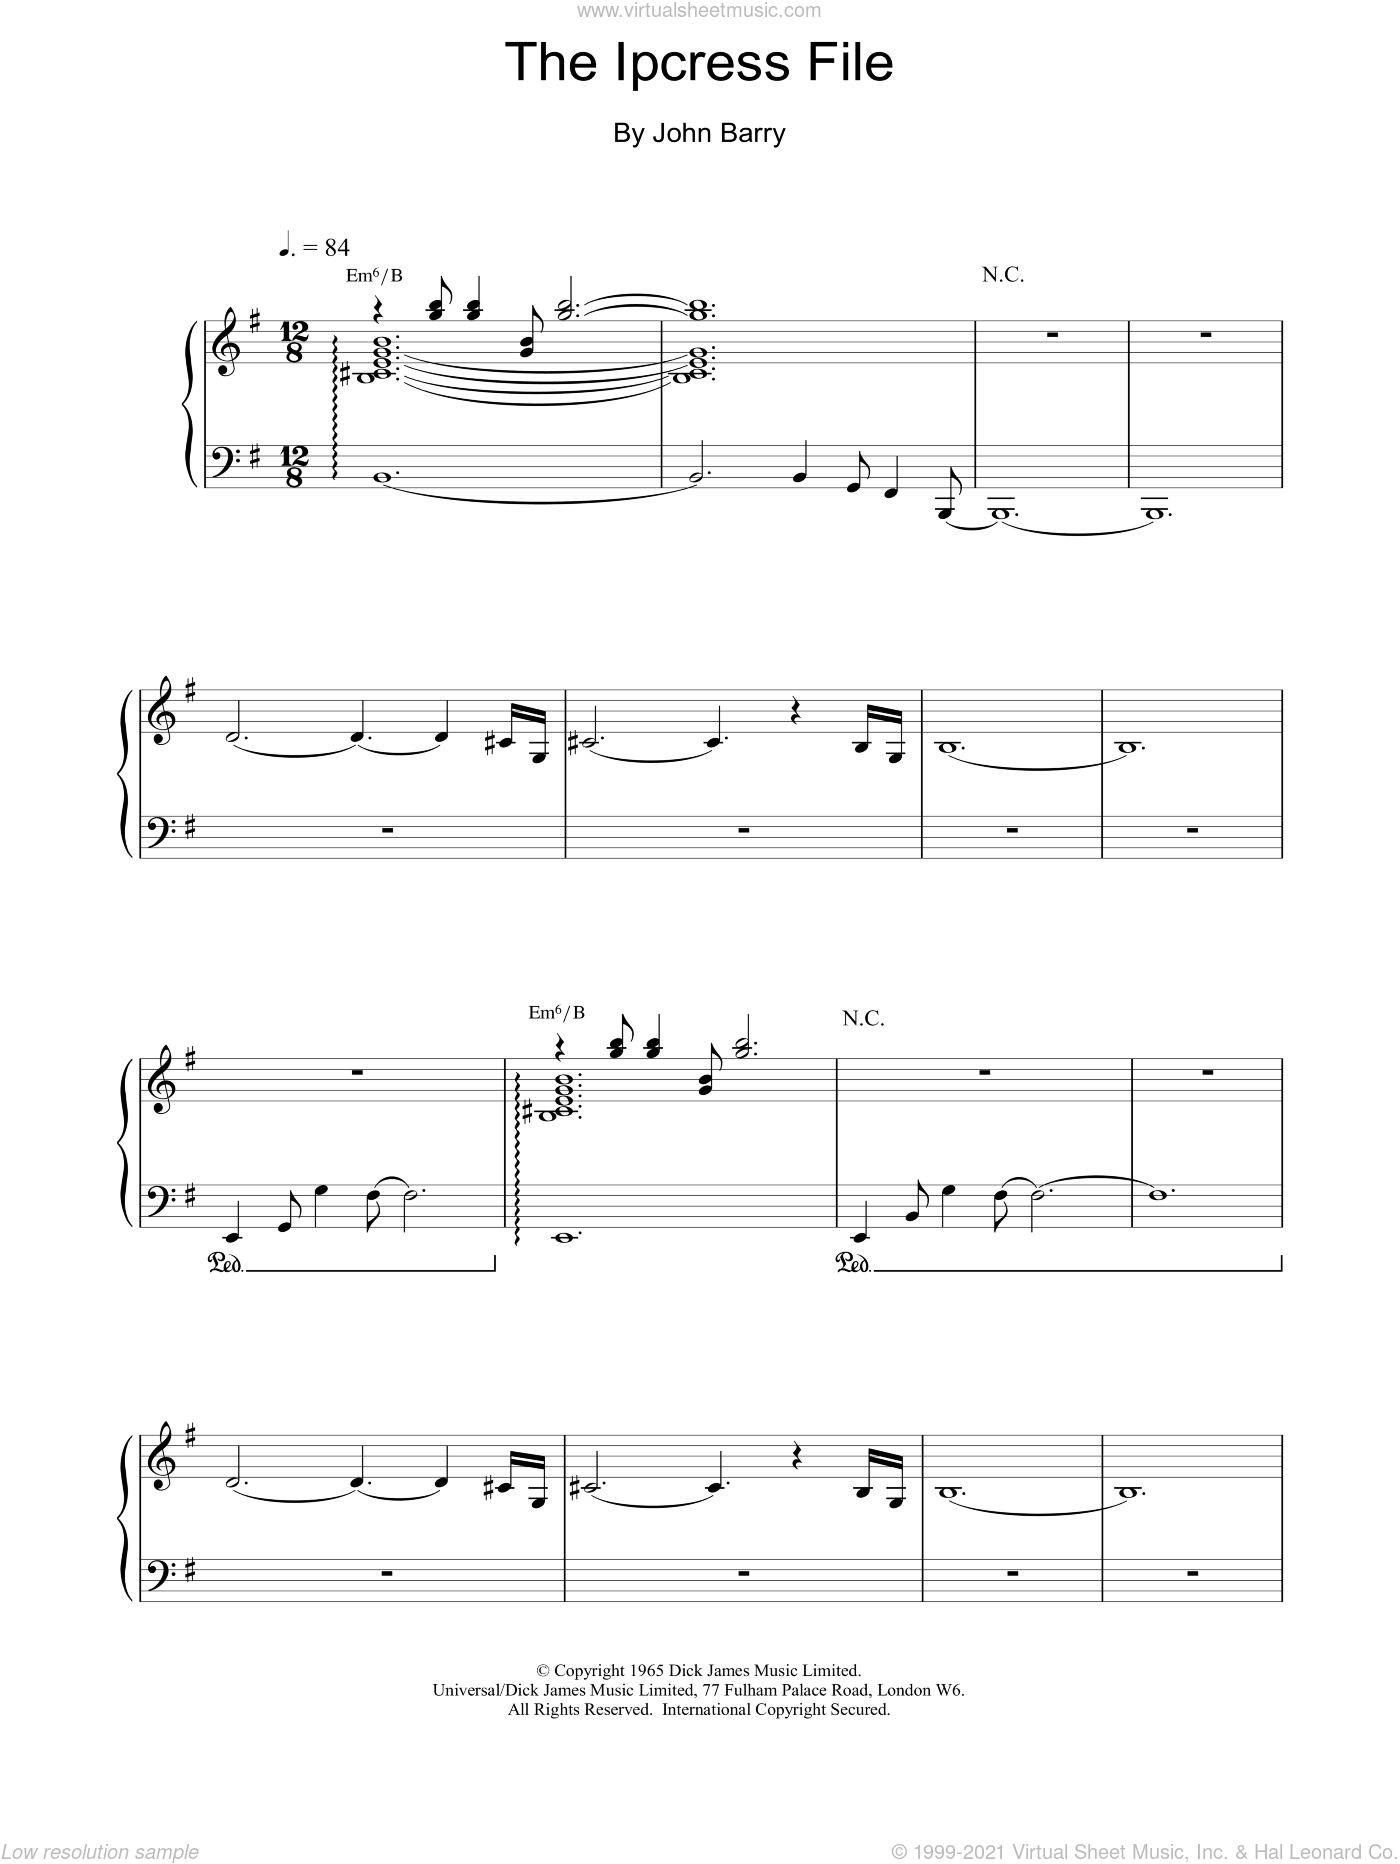 The Ipcress File sheet music for piano solo by John Barry, intermediate skill level